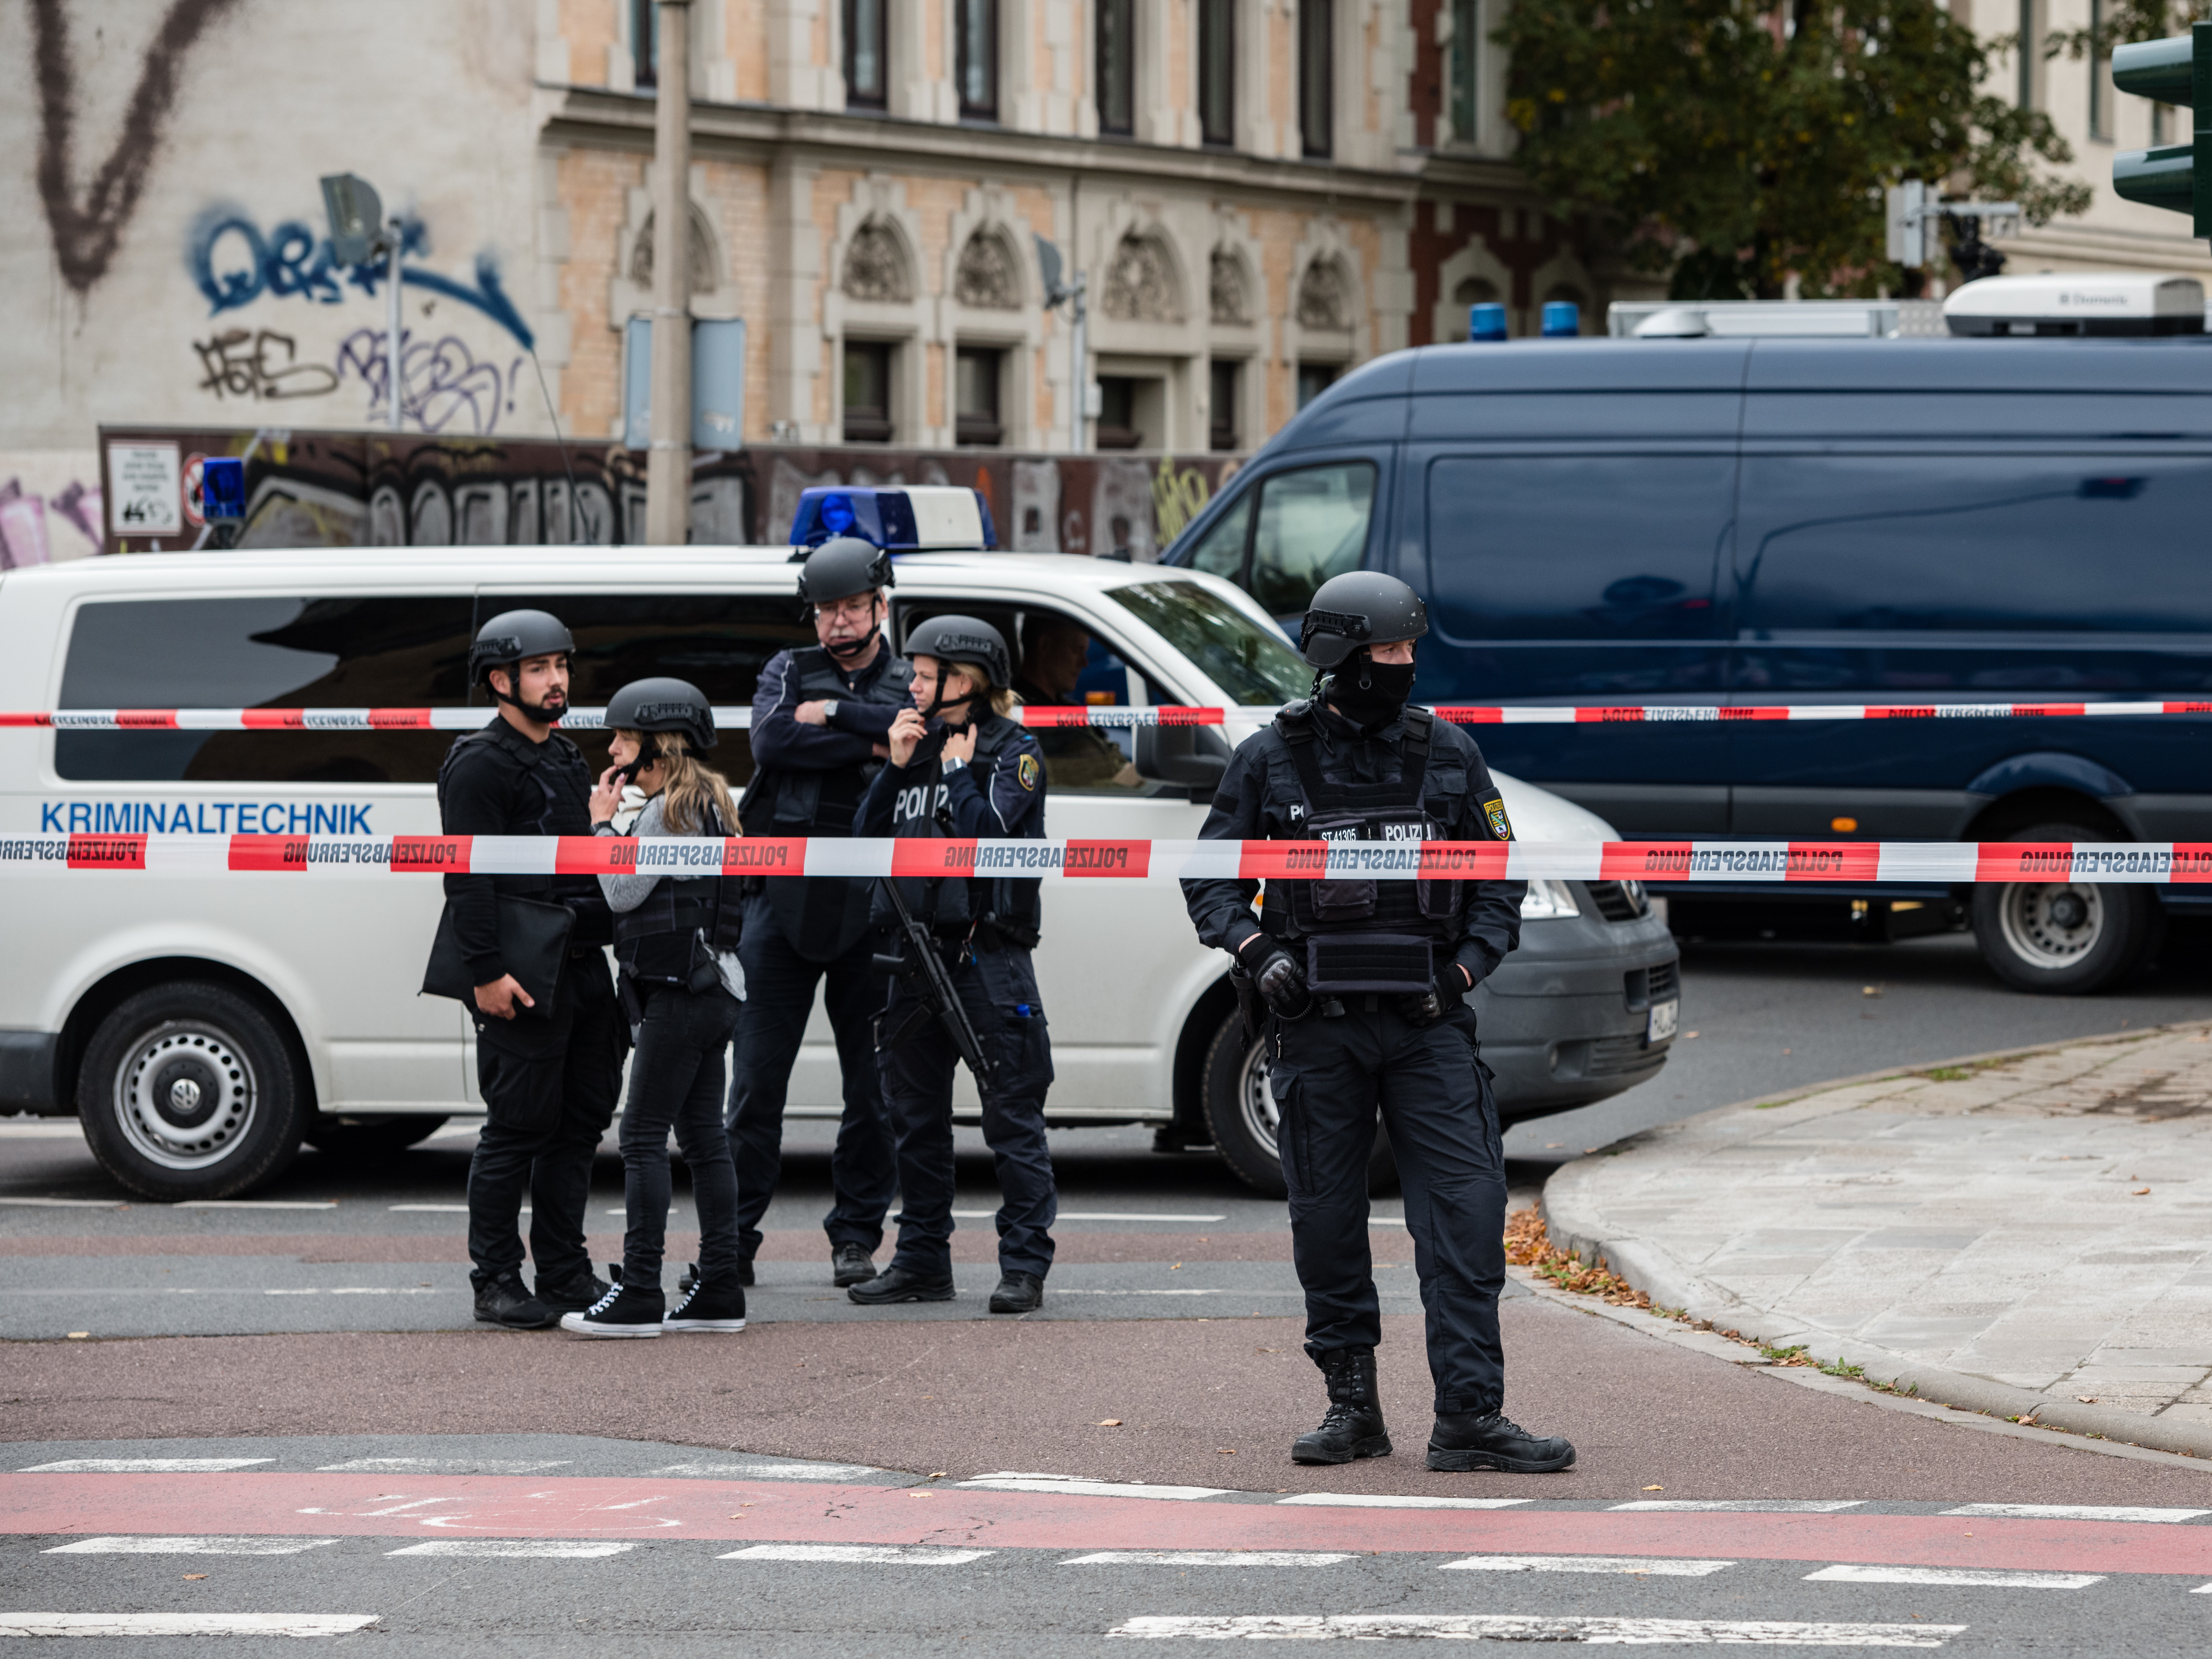 2 People Killed In Shooting In Eastern Germany In Attack Outside Synagogue